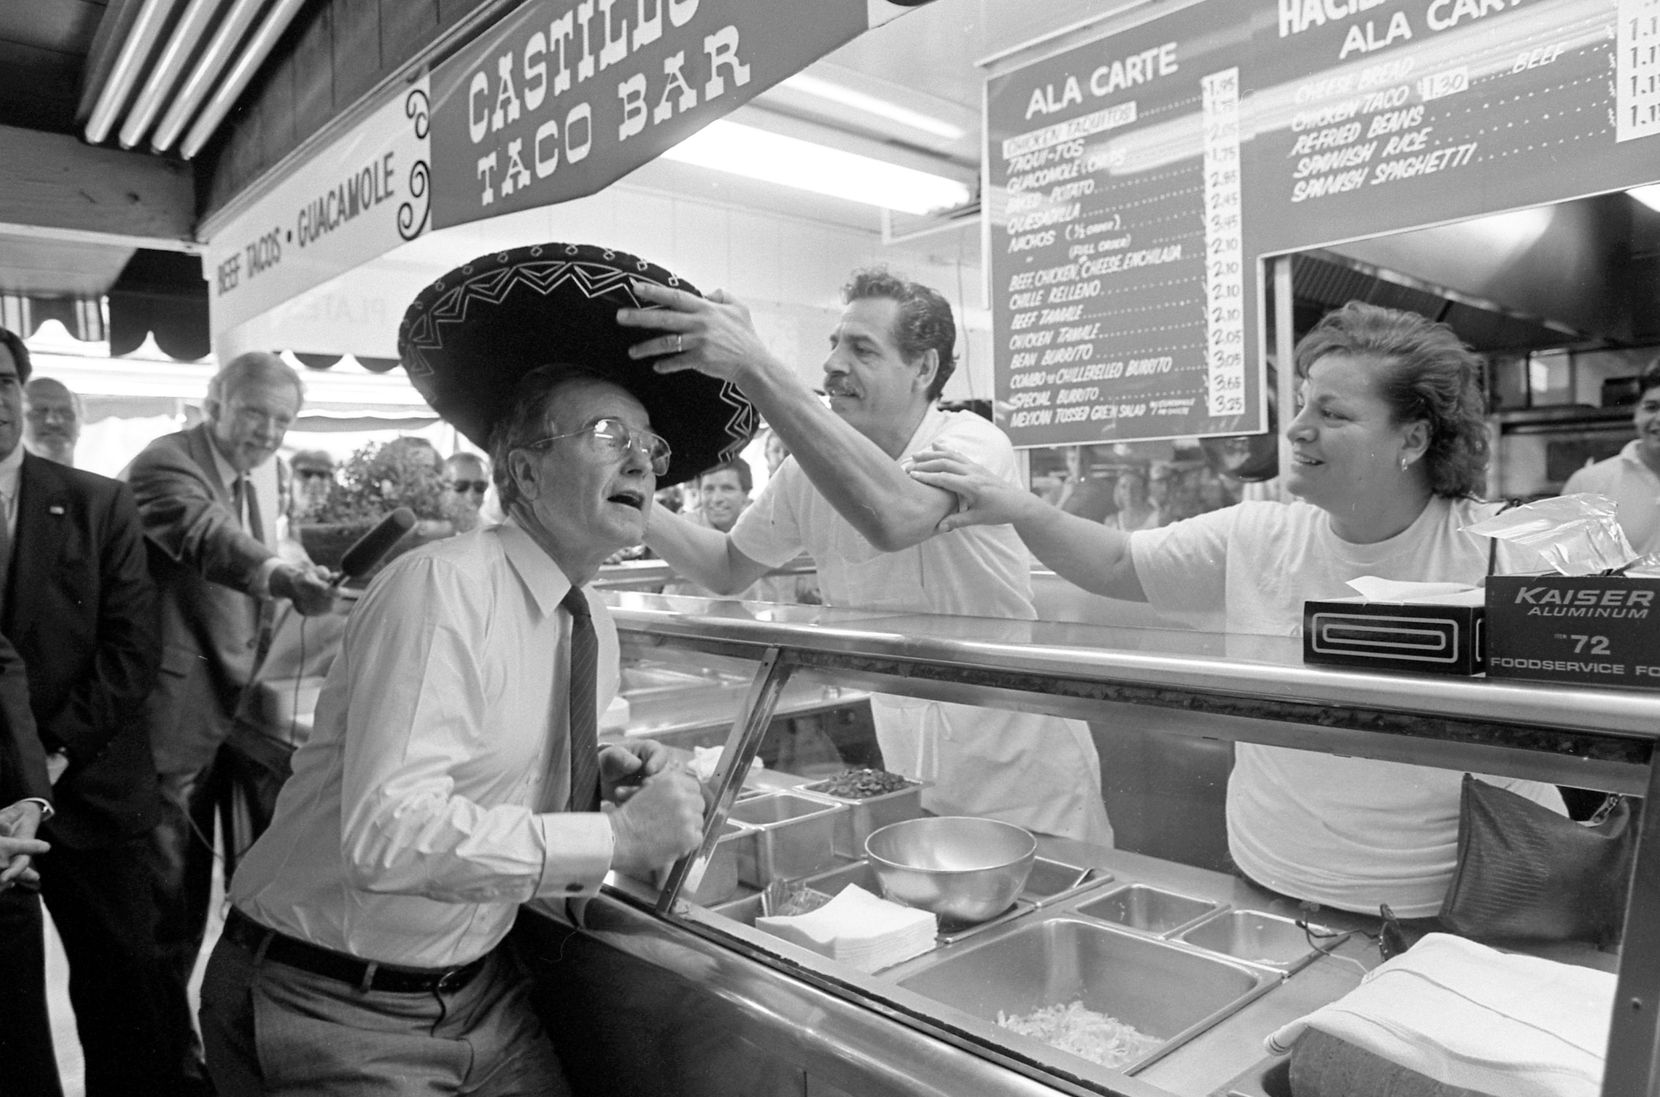 1988: Vice President George Bush dons a sombrero while campaigning at the Farmers Market in Los Angeles.